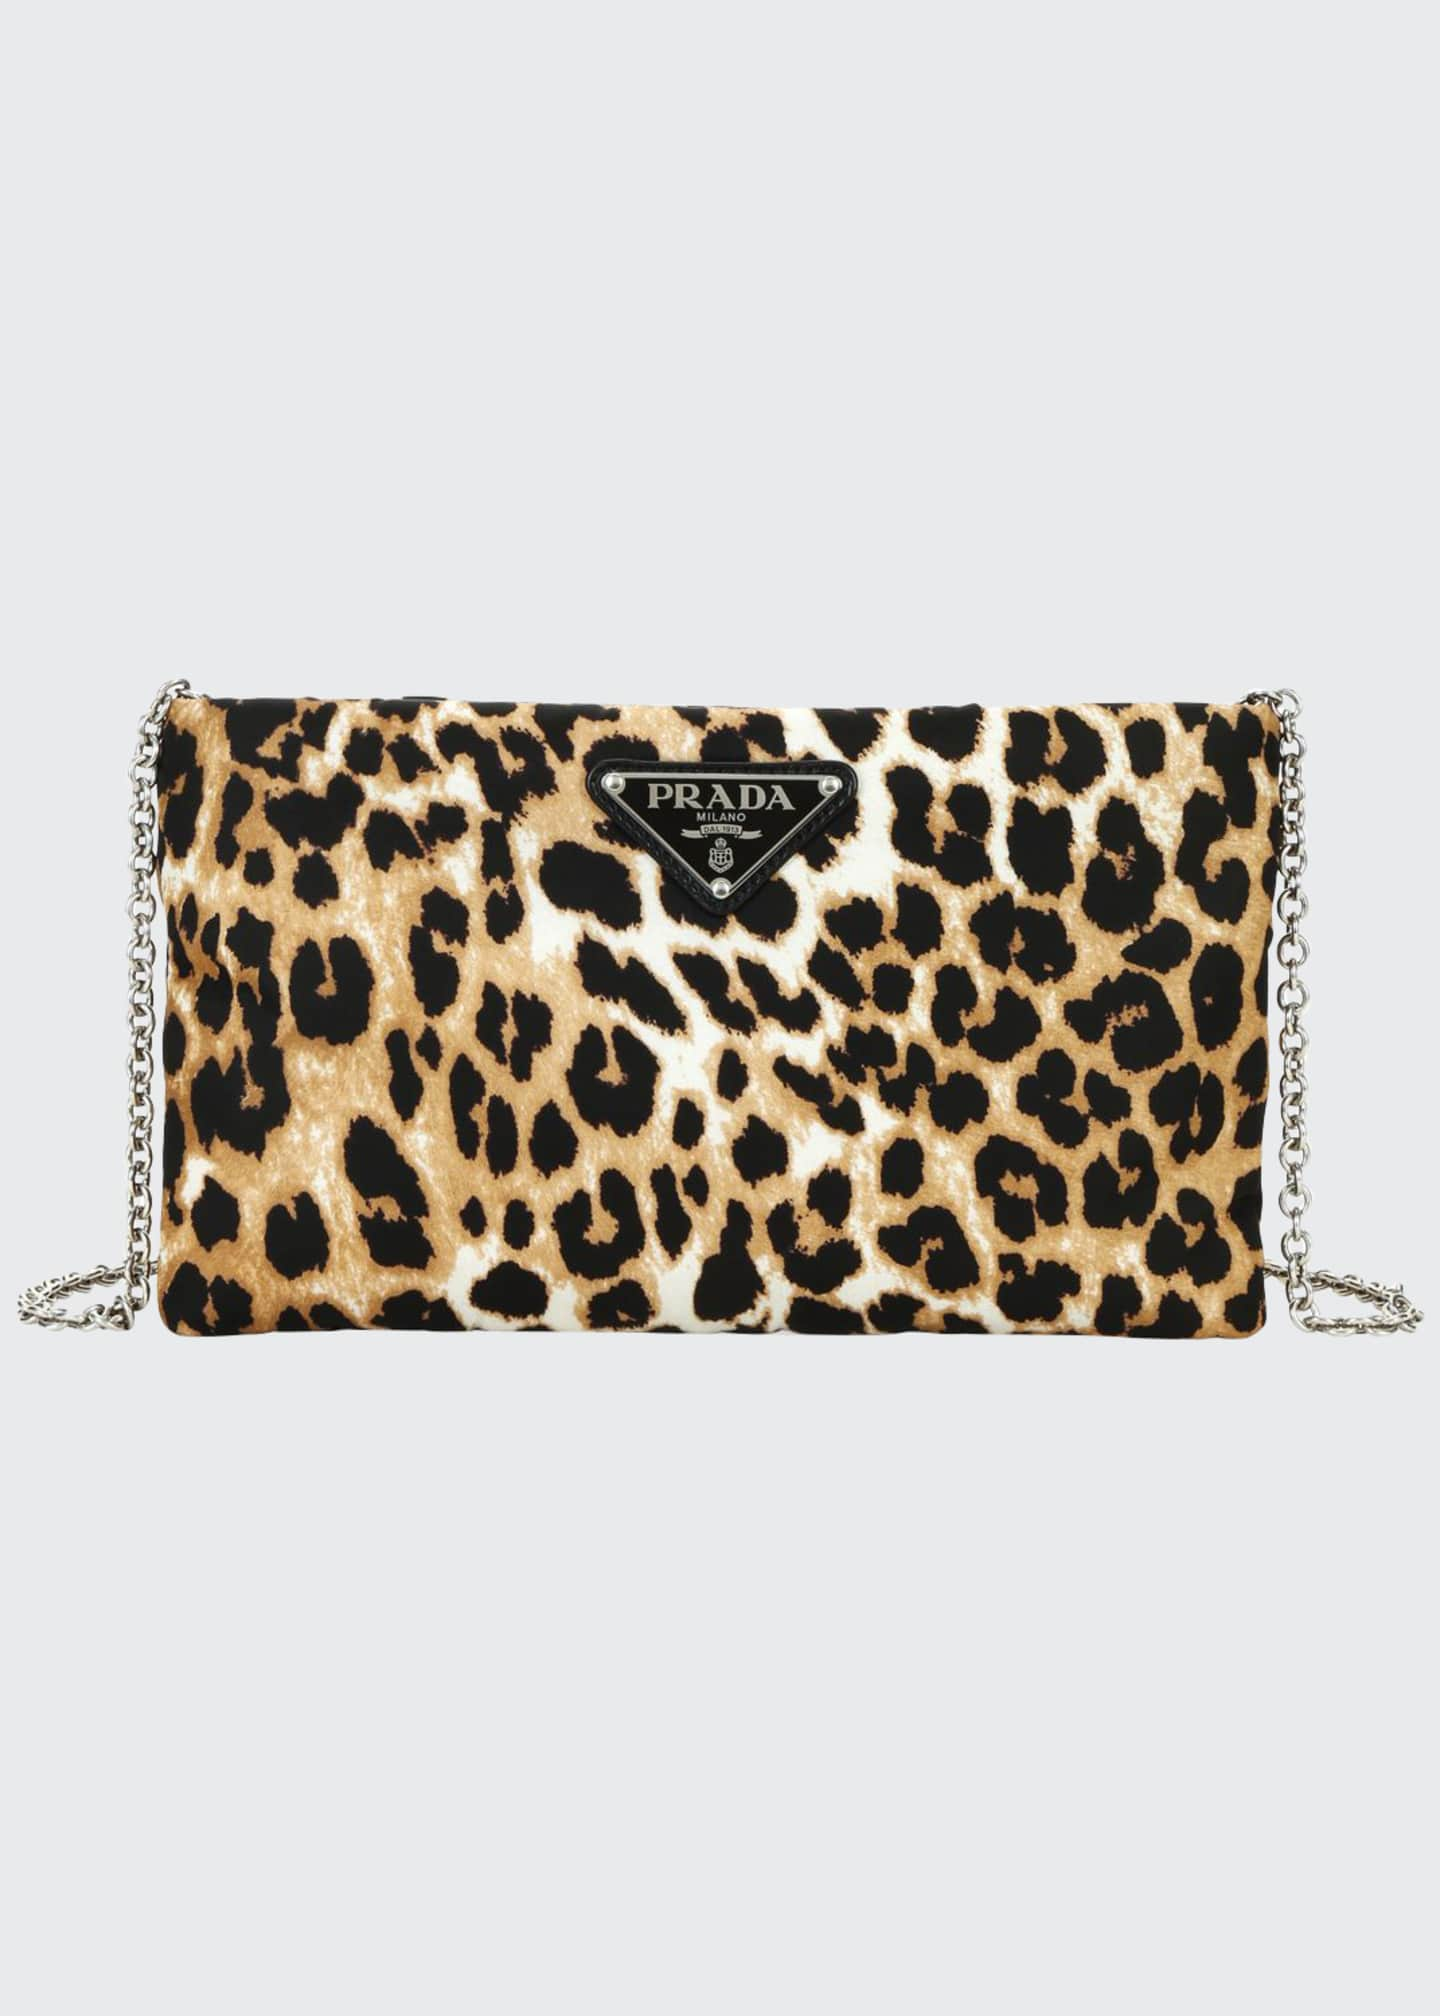 Prada Small Tessuto Soft Leopard Clutch